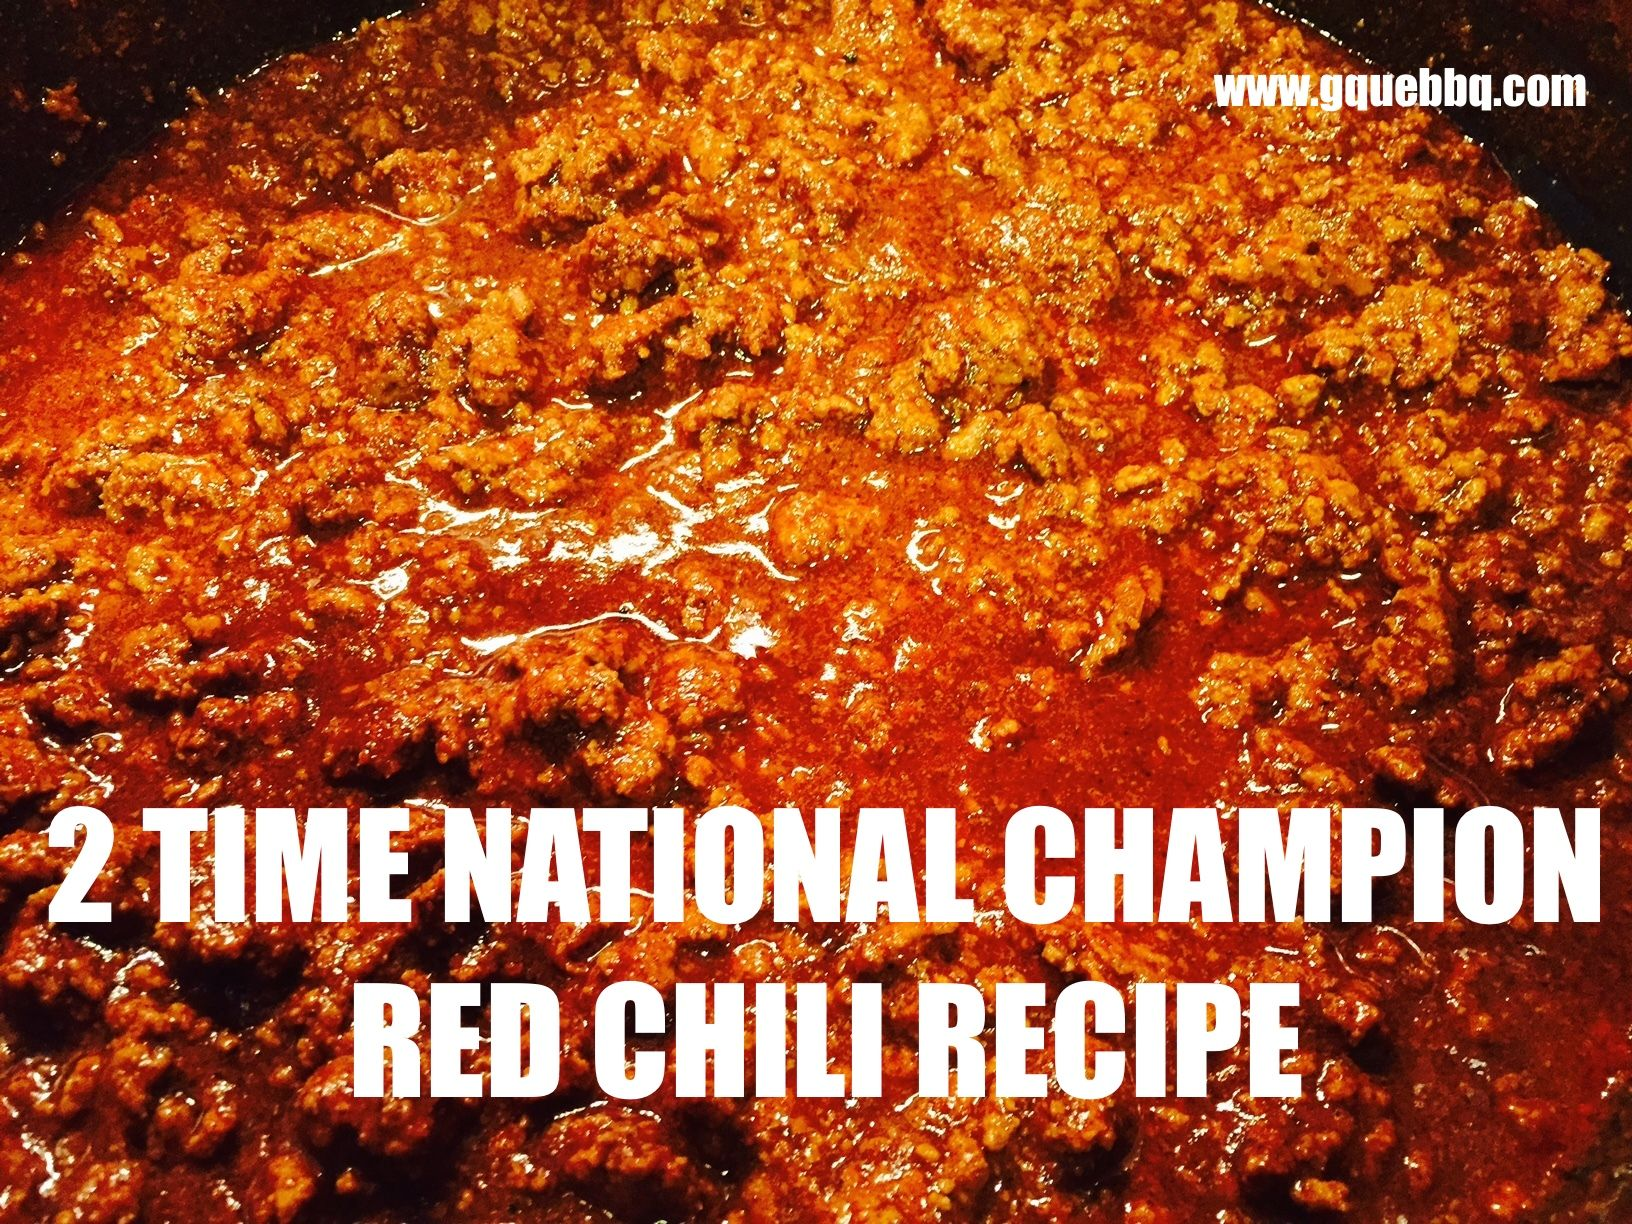 This video teaches you how to make a 2-time National Champion Red Chili. This recipe was created by Margaret Nadeau and won the CASI Terilingua International Chili championship in 2005 & 2009. She calls it Sahara Chili To make: STEP 1: 2 lbs. Course ground beef (chili grand) 1 TBS... #chilirecipe